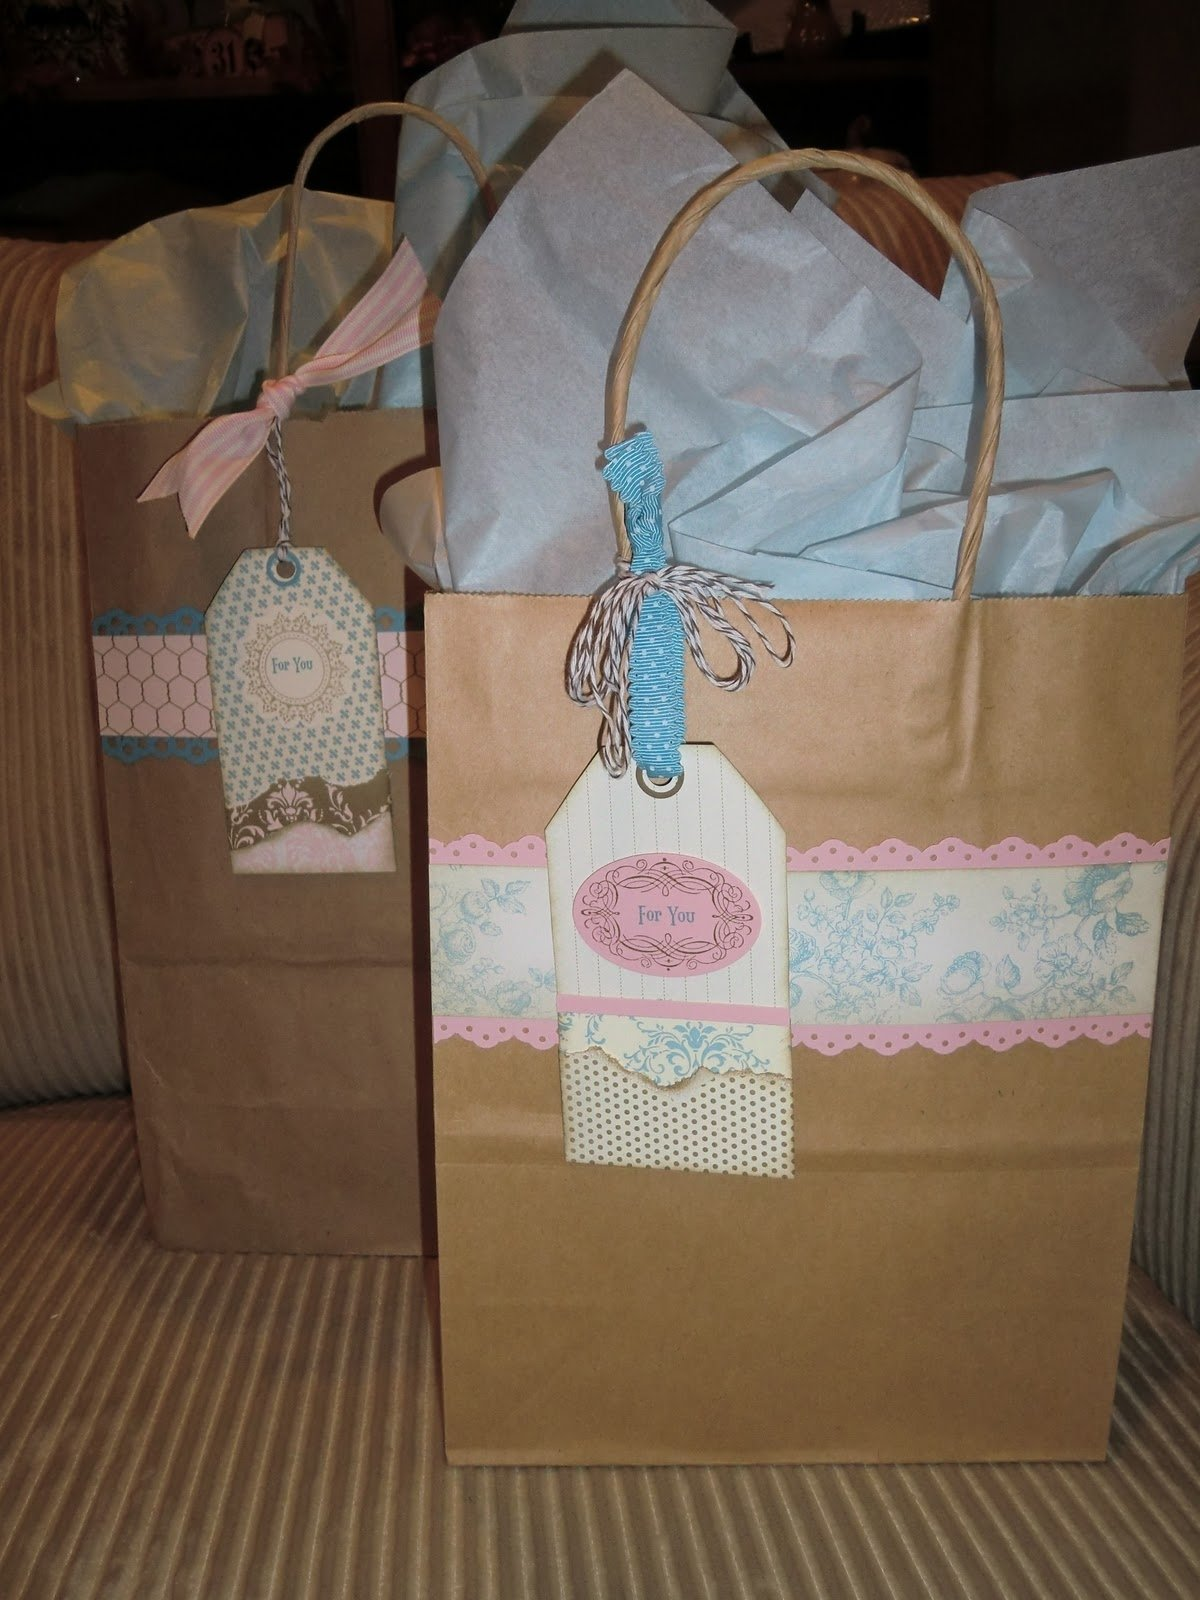 10 Elegant Baby Shower Gift Bag Ideas baby shower goodie bag ideas uk game gift favours for guests cup 2021